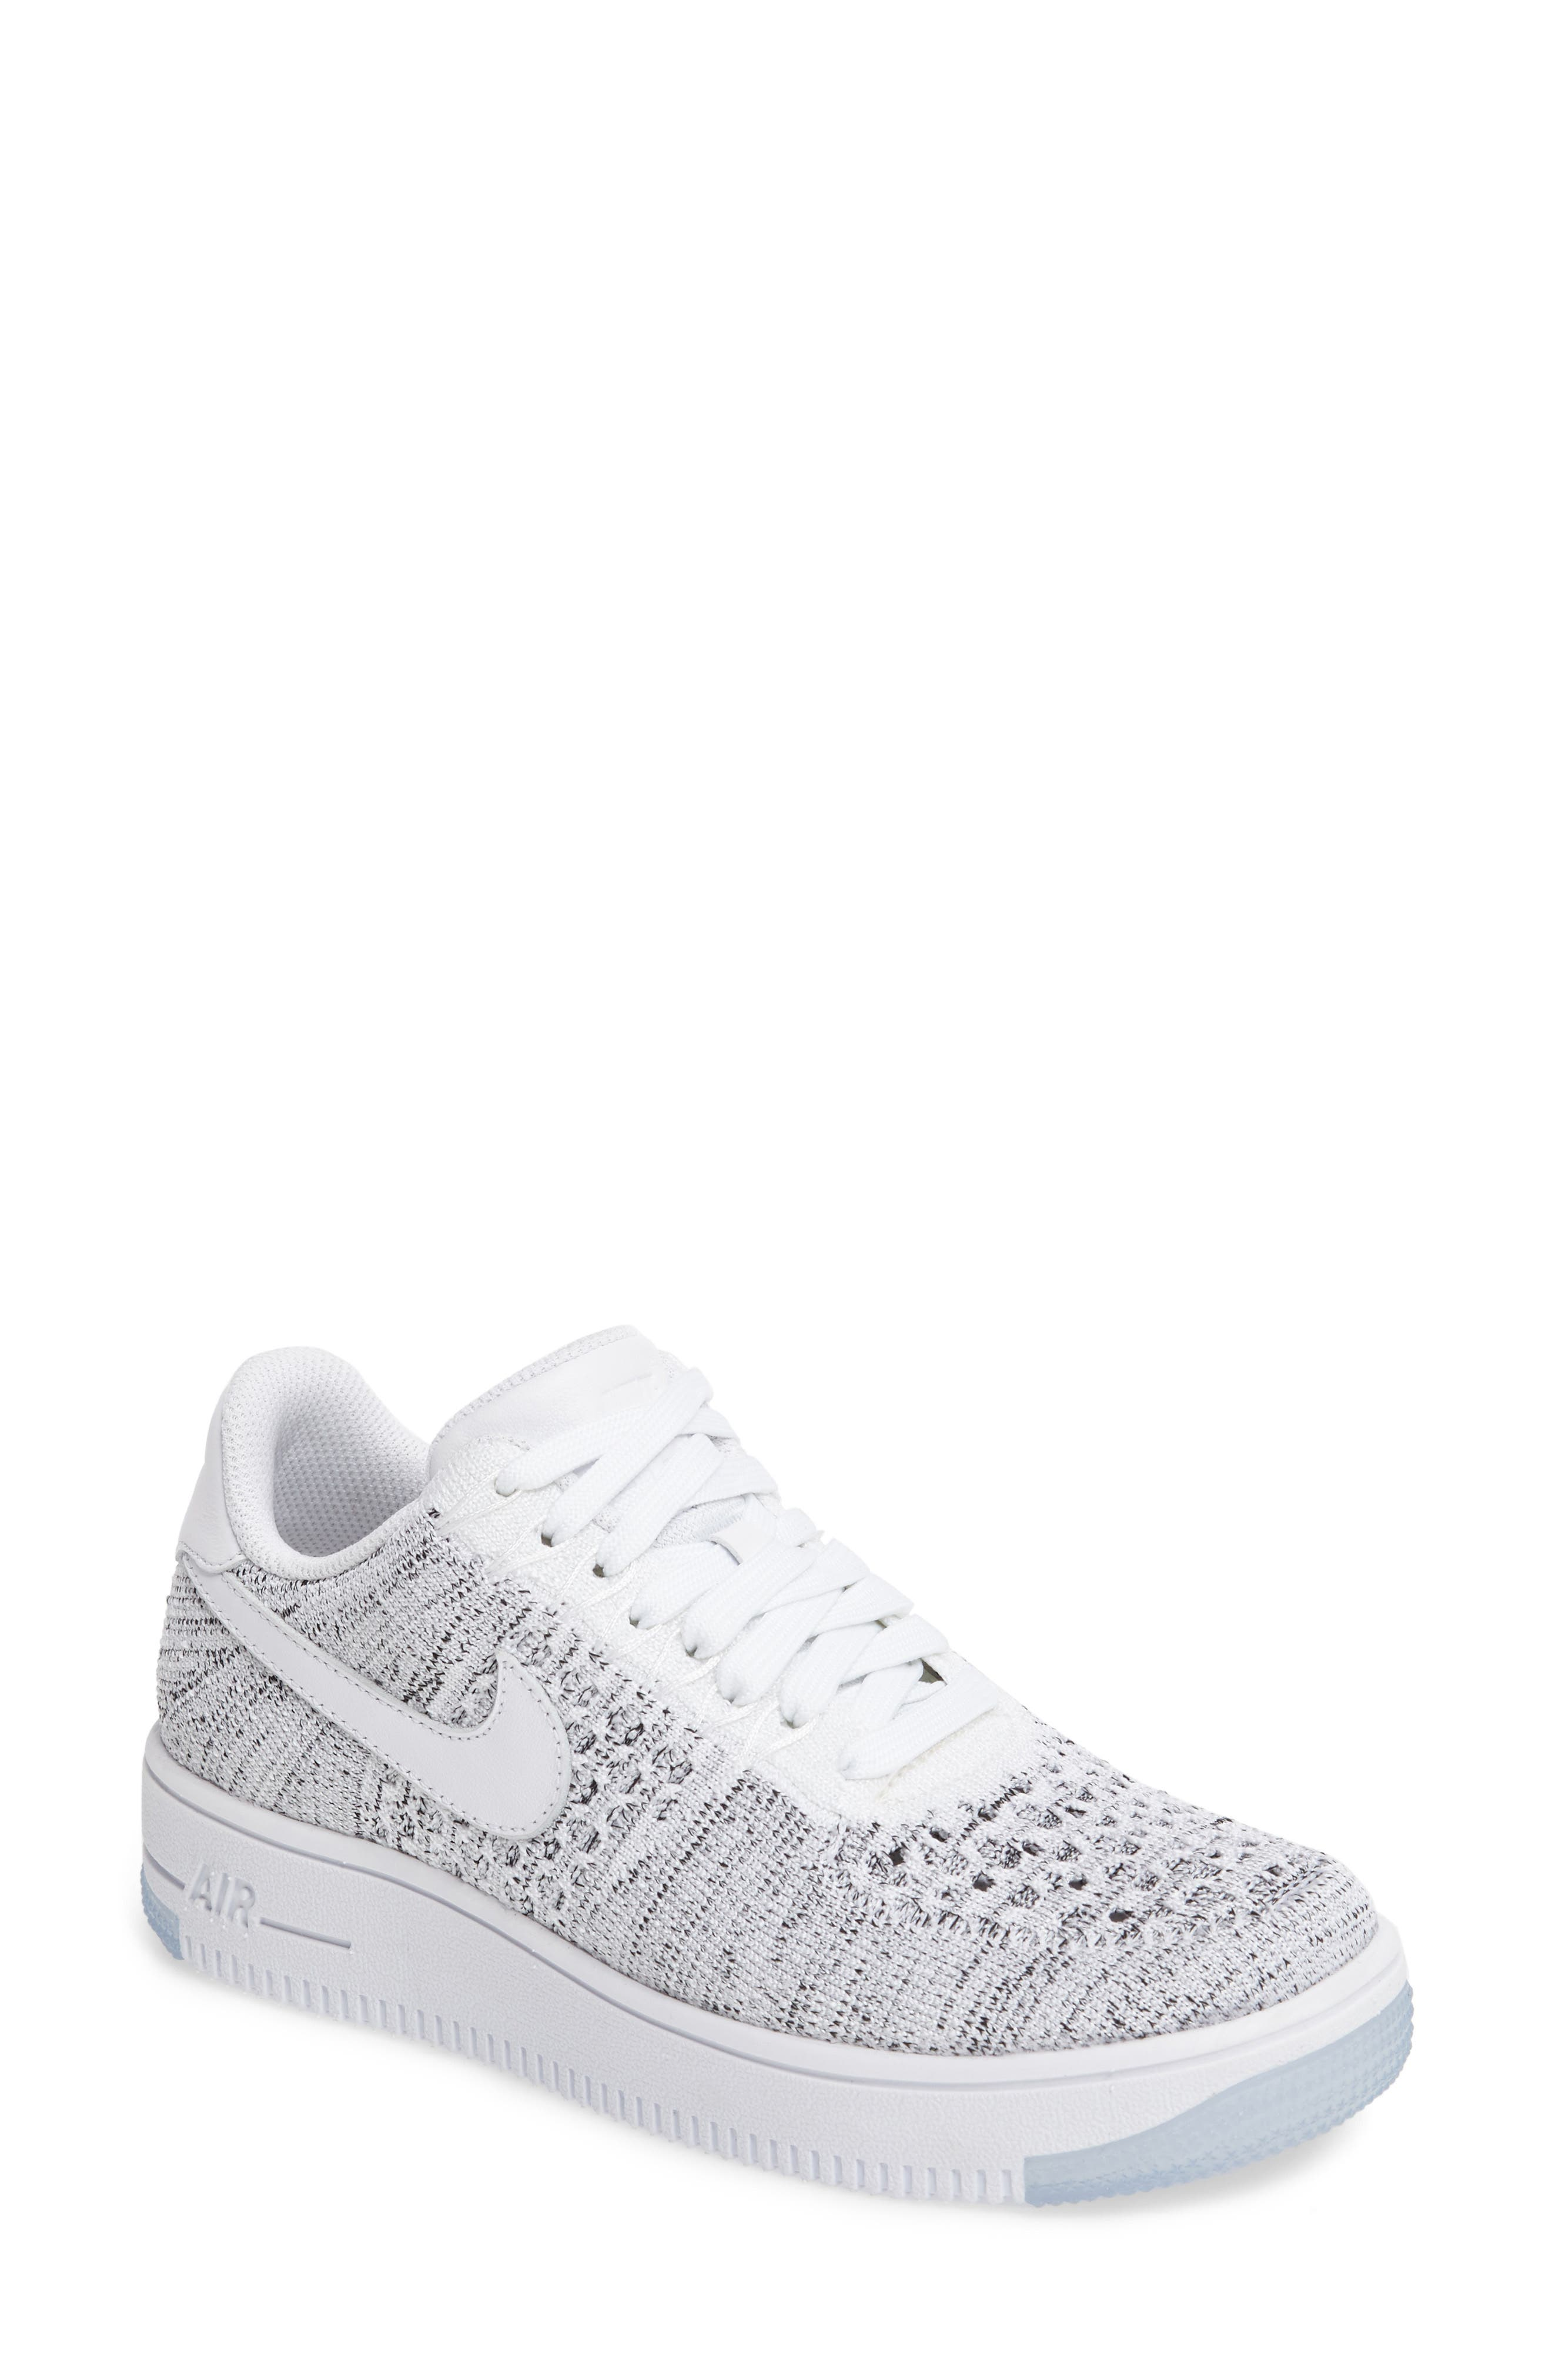 'Air Force 1 Flyknit Low' Sneaker,                             Main thumbnail 5, color,